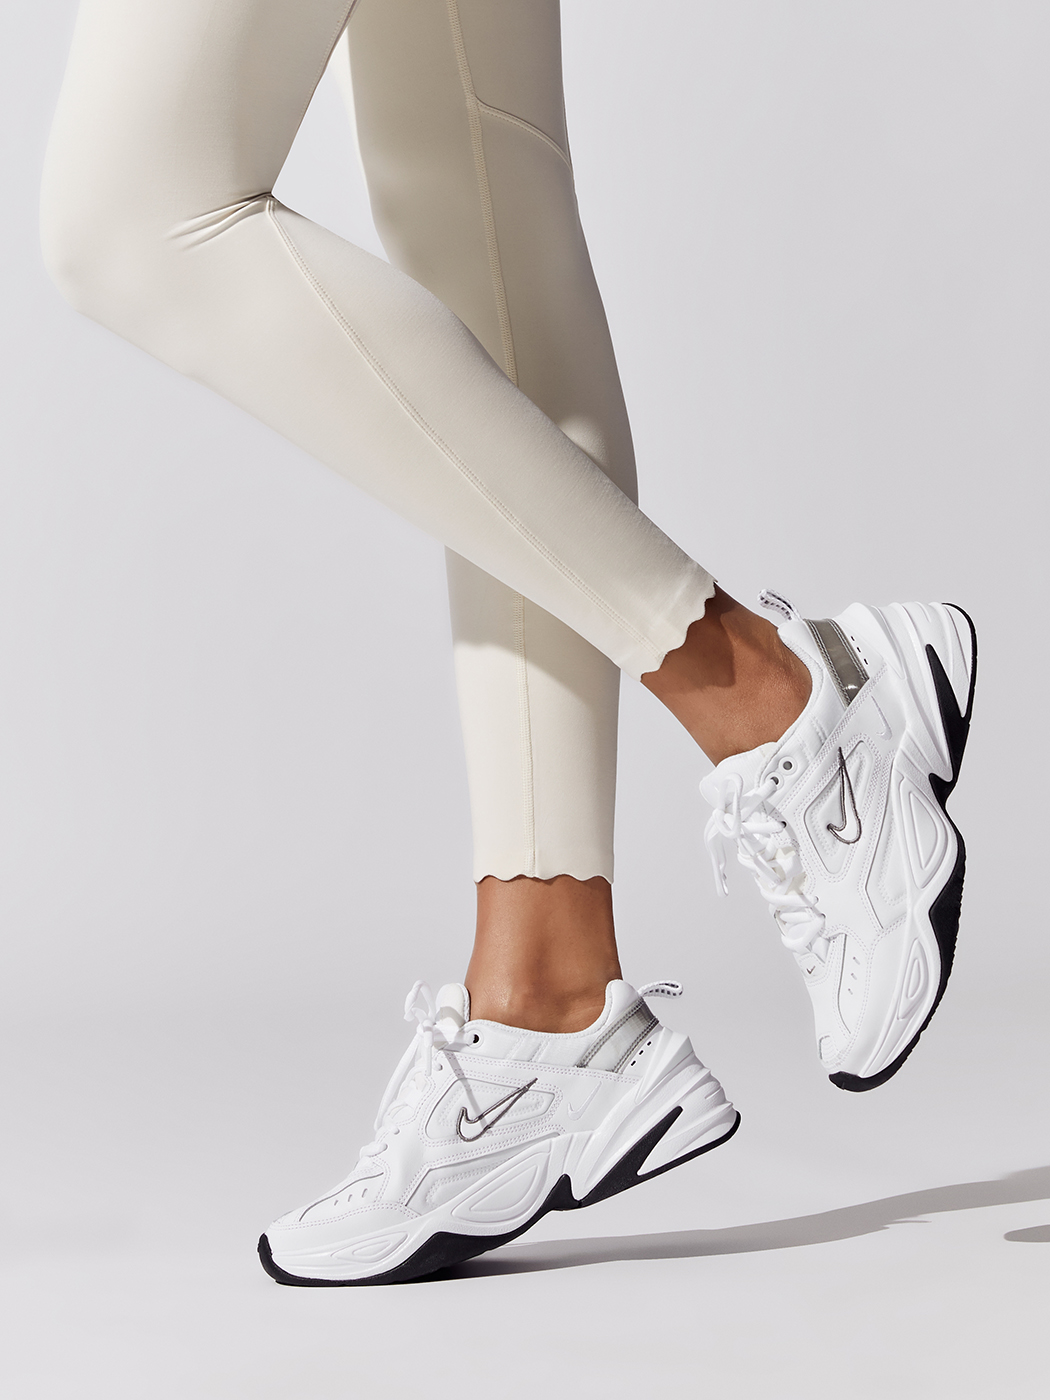 Nike women, Outfit shoes, Casual shoes